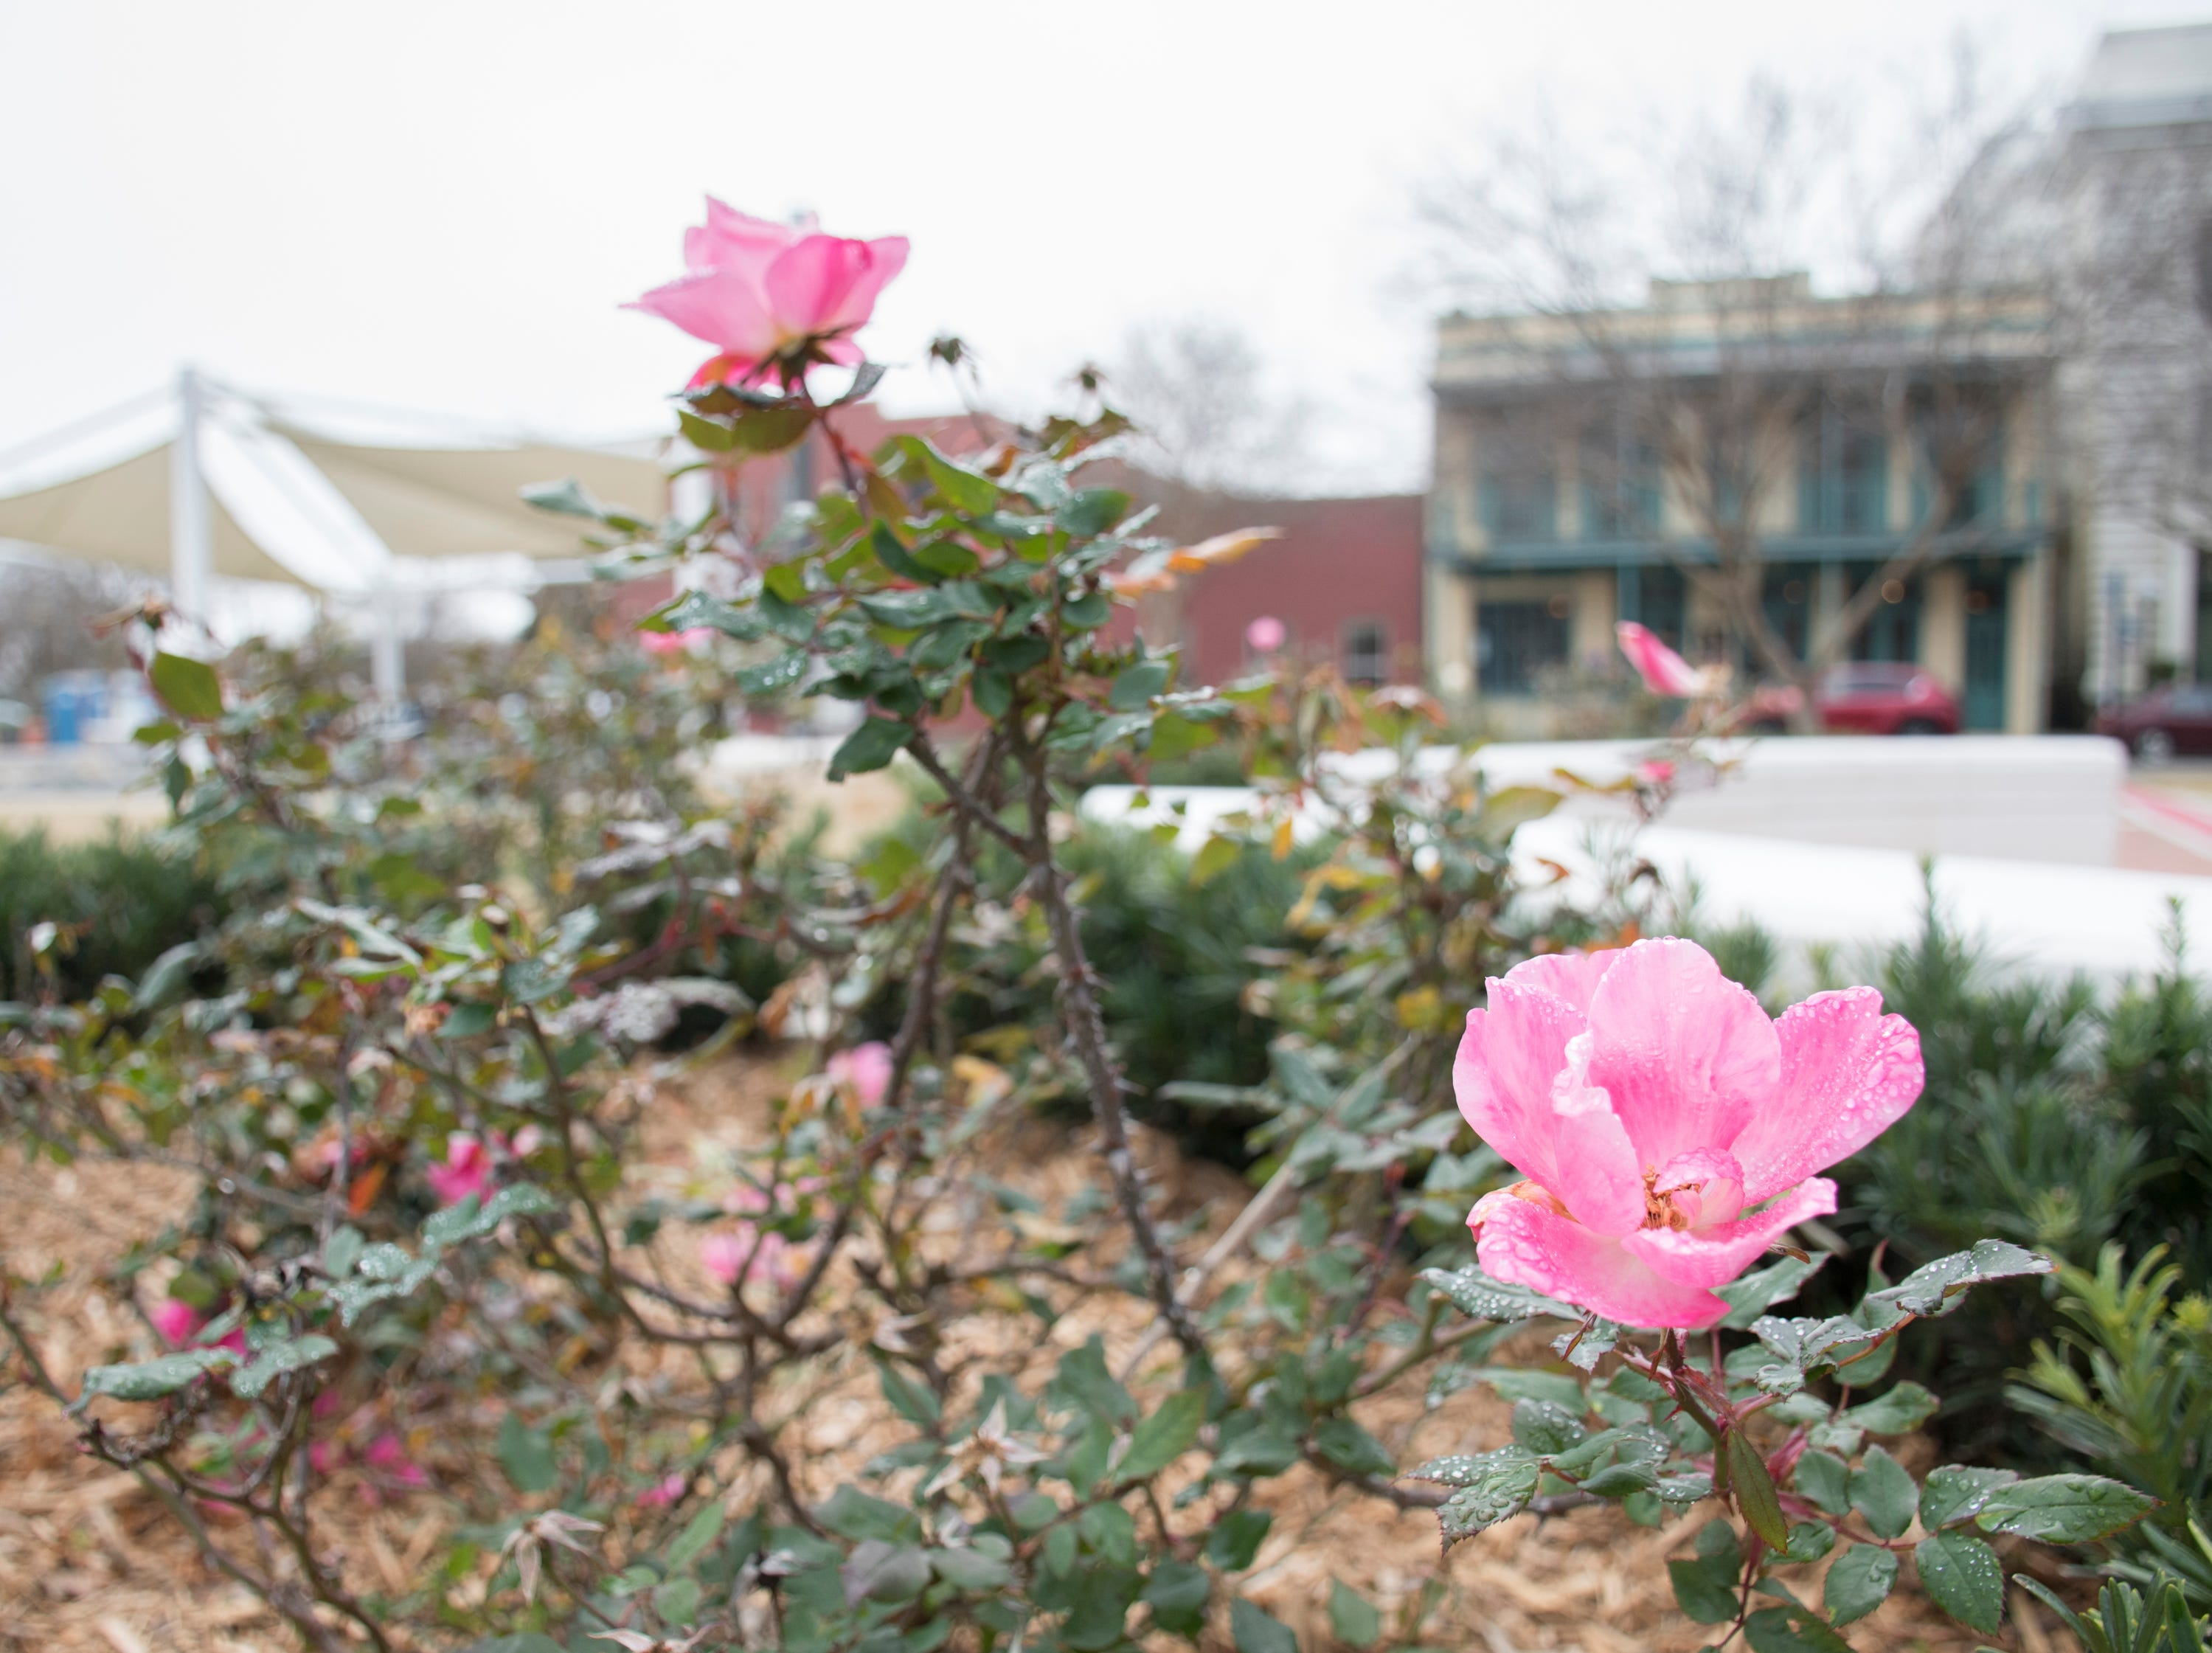 The rose garden at the Museum Plaza behind the T.T. Wentworth Museum in downtown Pensacola on Tuesday, February 5, 2019.